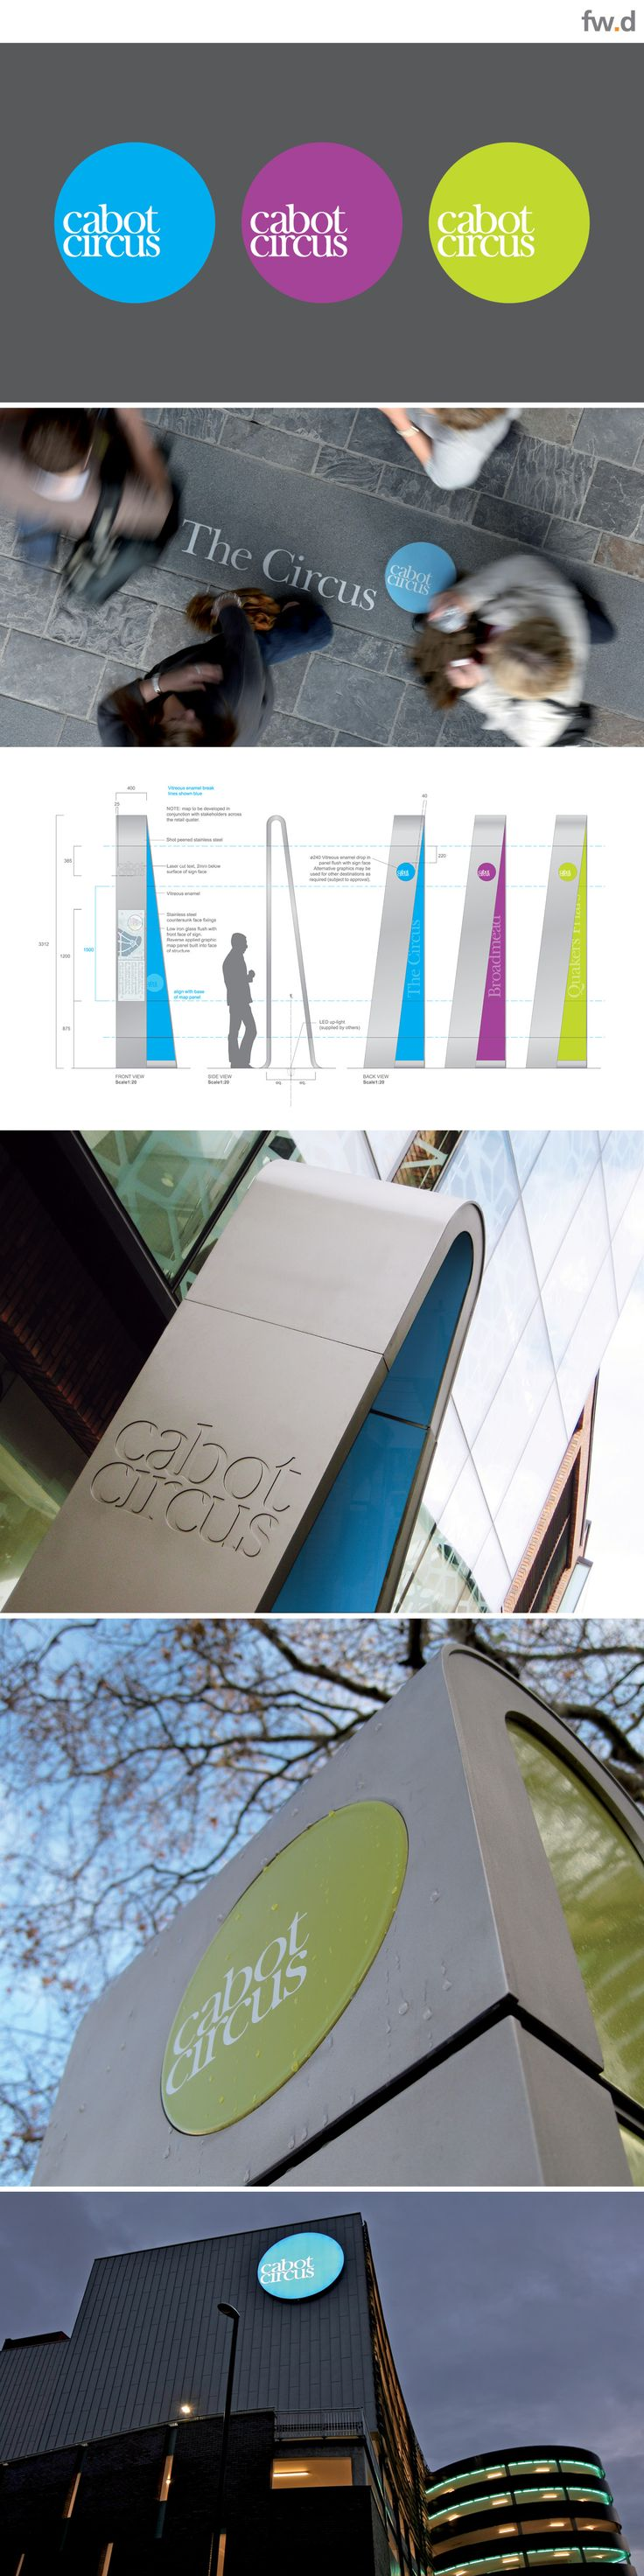 Brand promotion and implementation throughout the Cabot Circus retail destination by fwdesign. www.fwdesign.com #material #signage #brand